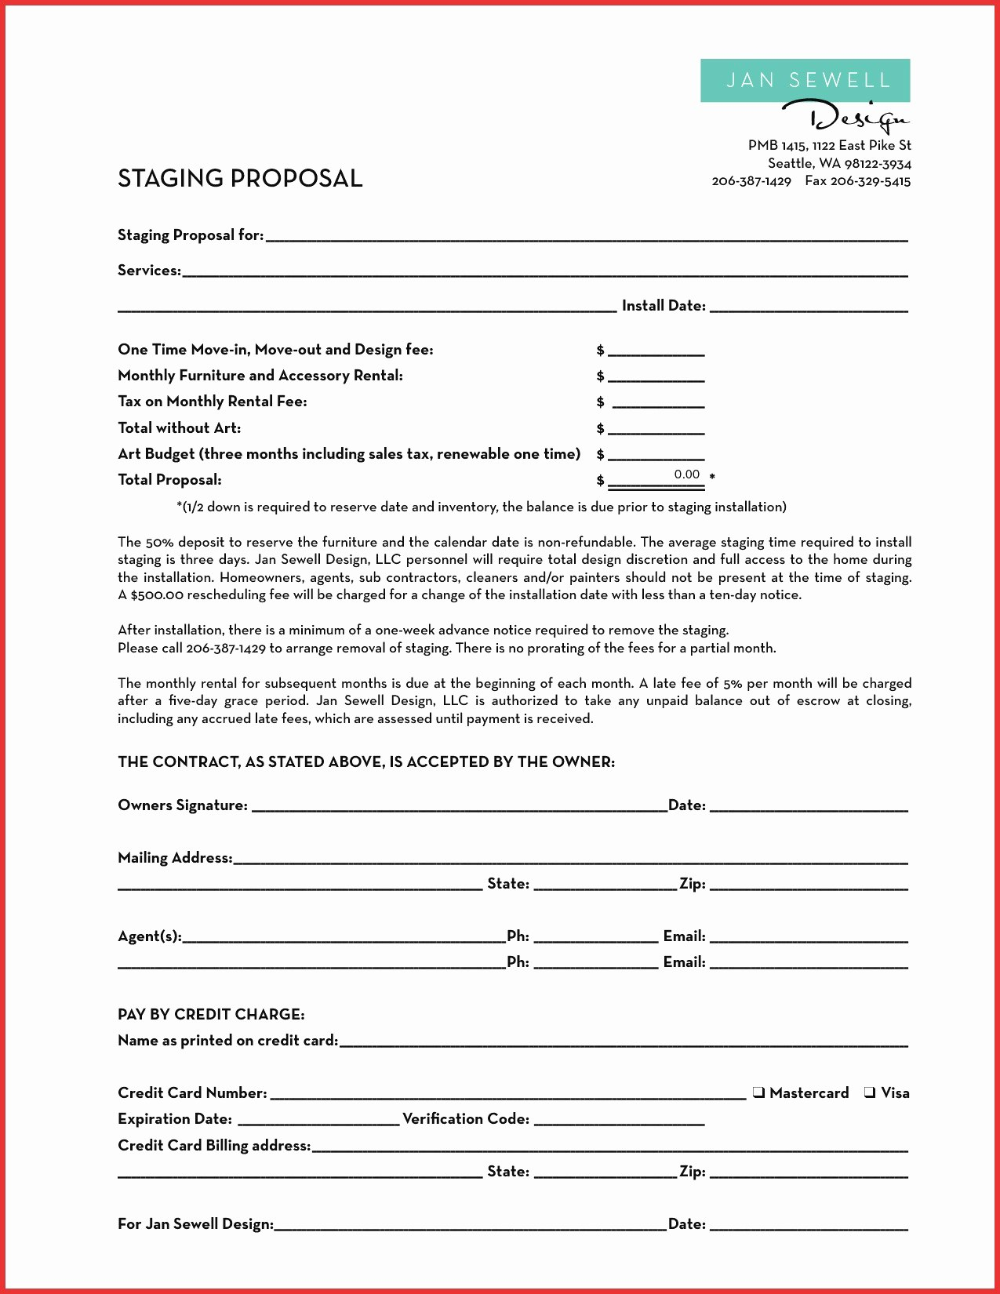 Graphic Design Invoice Template Fresh Freelance Designer Bes With Graphic Design Invoice Template Pdf 10 Home Staging Contract Template Real Estate Staging